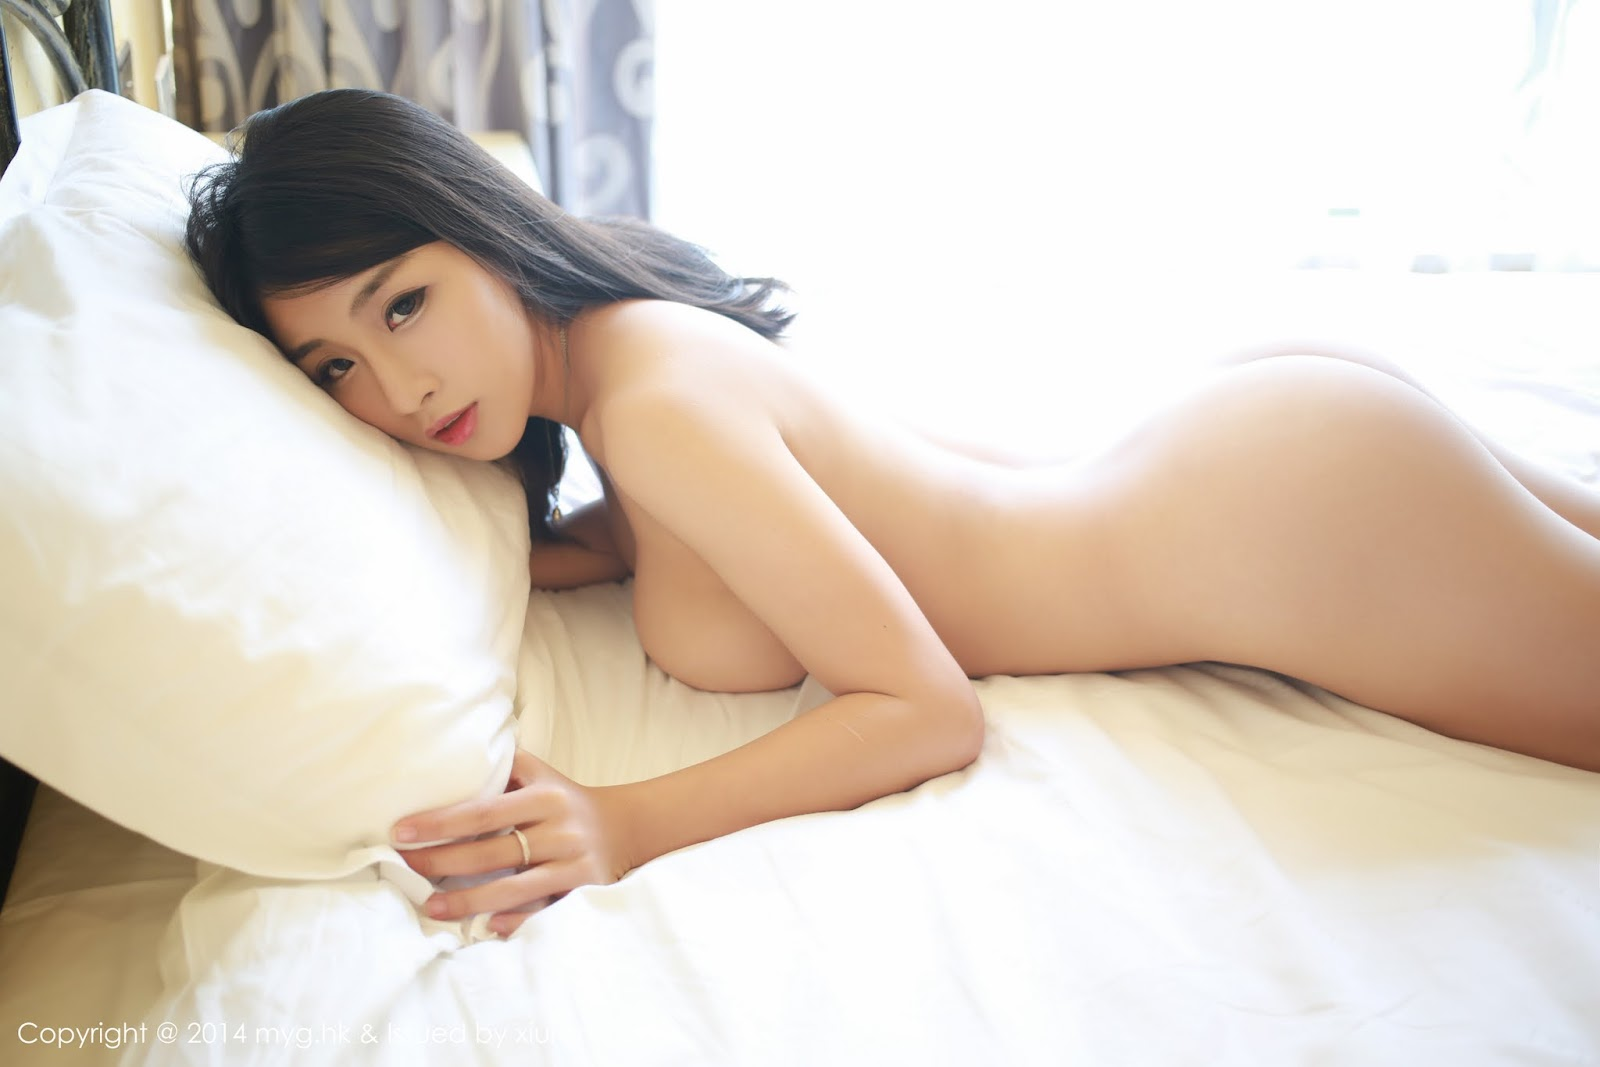 0041 - Beautiful Naked Girl Model MYGIRL VOL.35